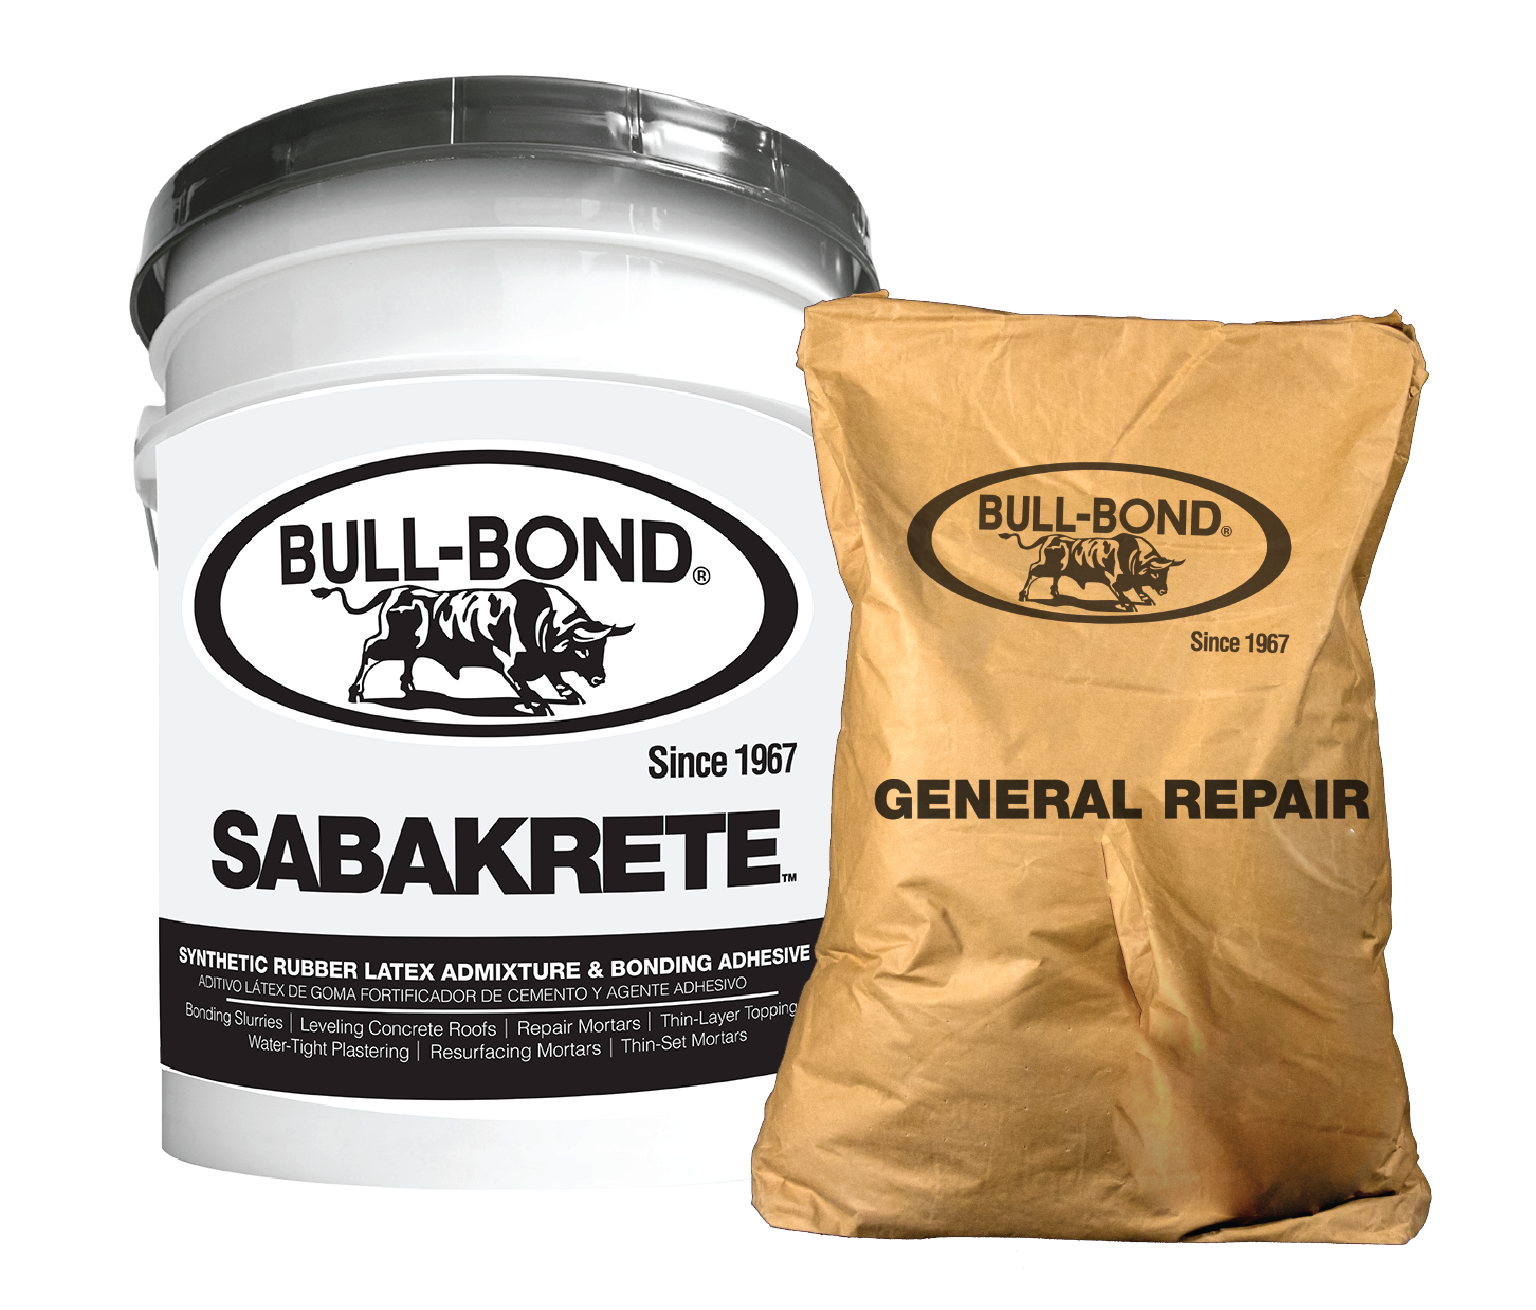 SABAKRETE + SACO-GENERAL REPAIR BULLBOND